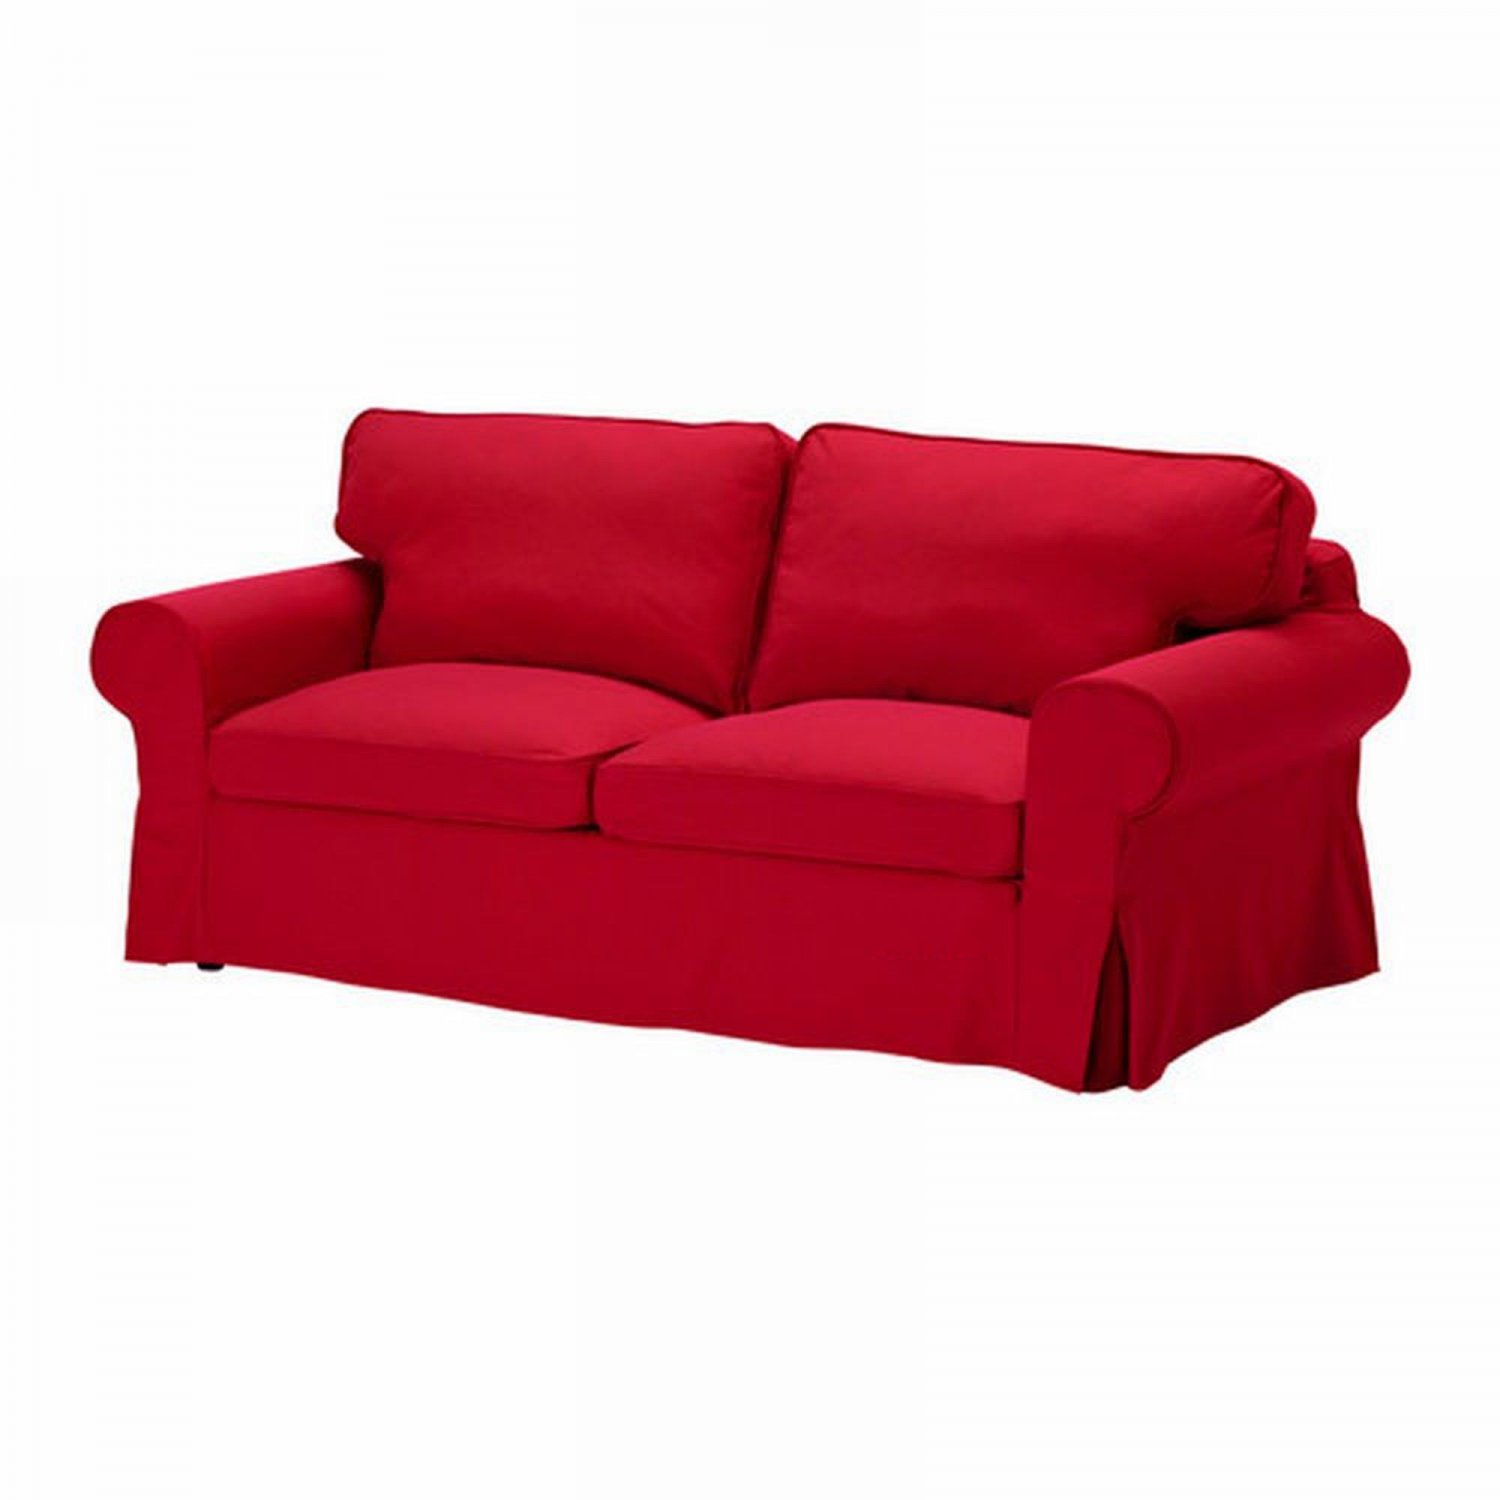 ikea ektorp sofa bed slipcover cover idemo red sofabed cvr. Black Bedroom Furniture Sets. Home Design Ideas